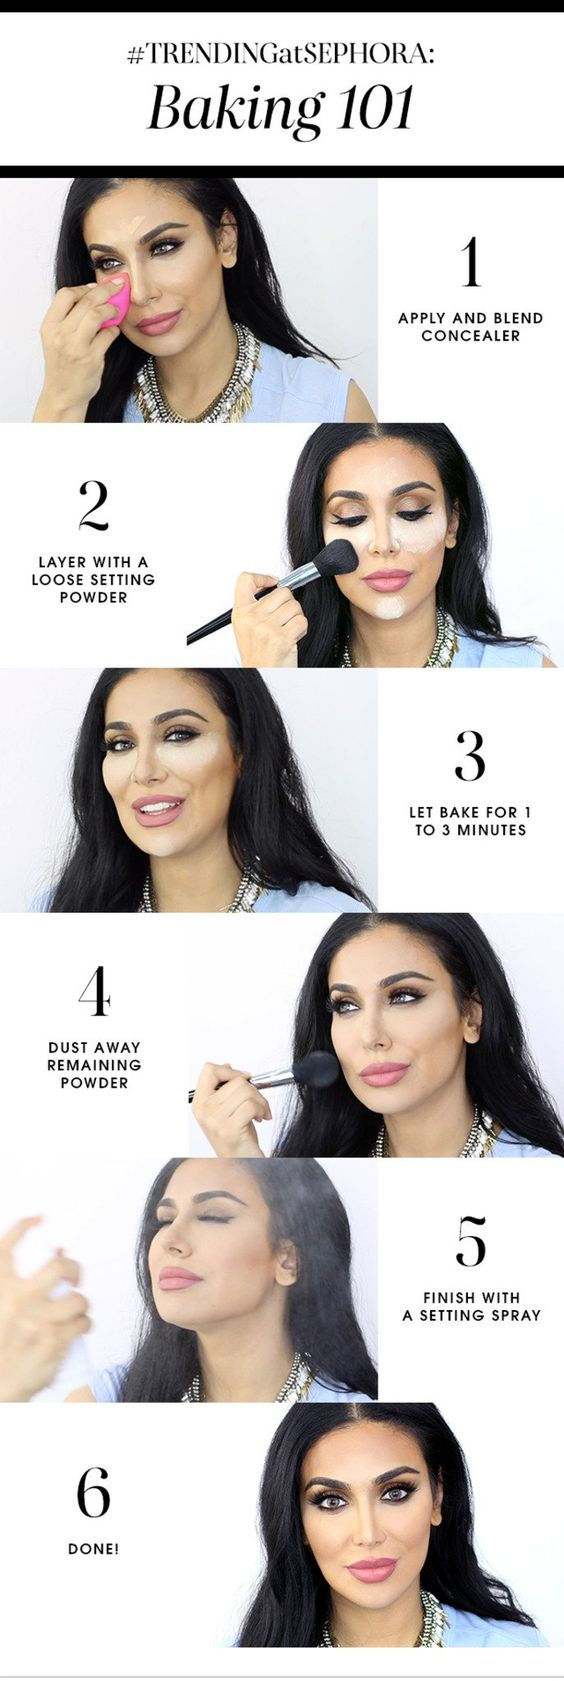 makeup chart how to bake makeup popxo